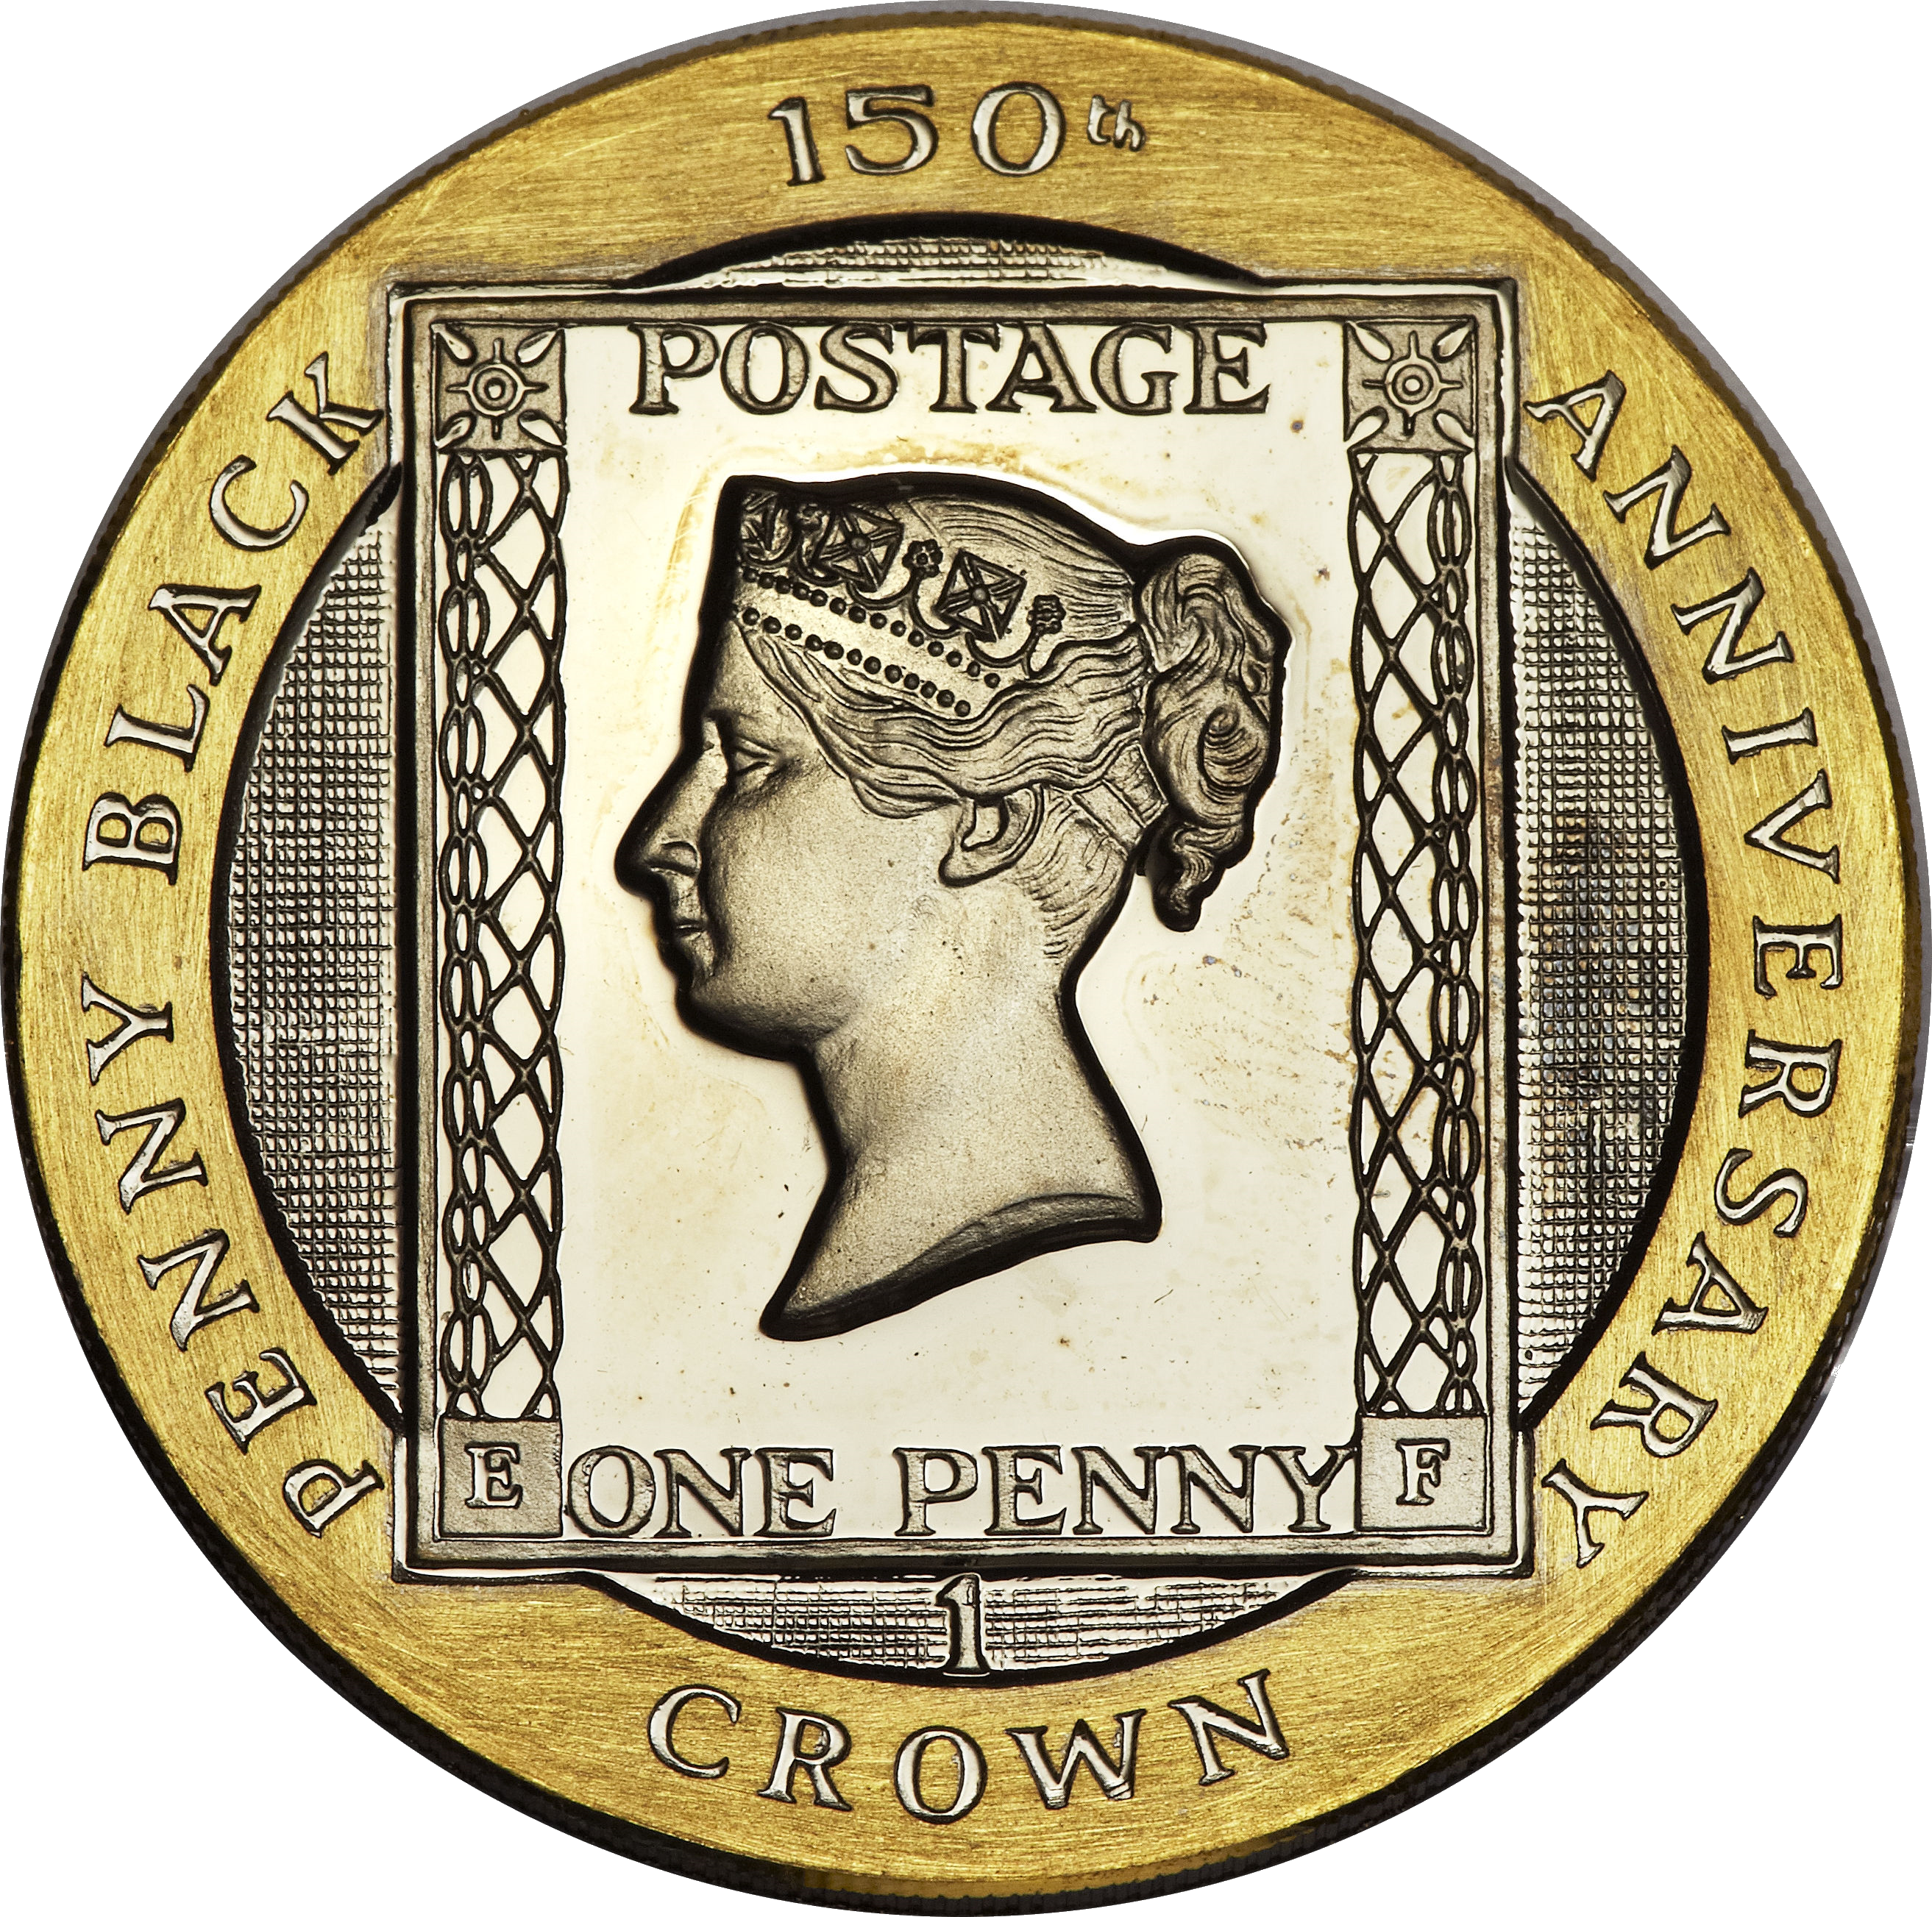 1990 Great Britain 1-crown gold proof coin commemorating the 150th anniversary of the Penny Black.